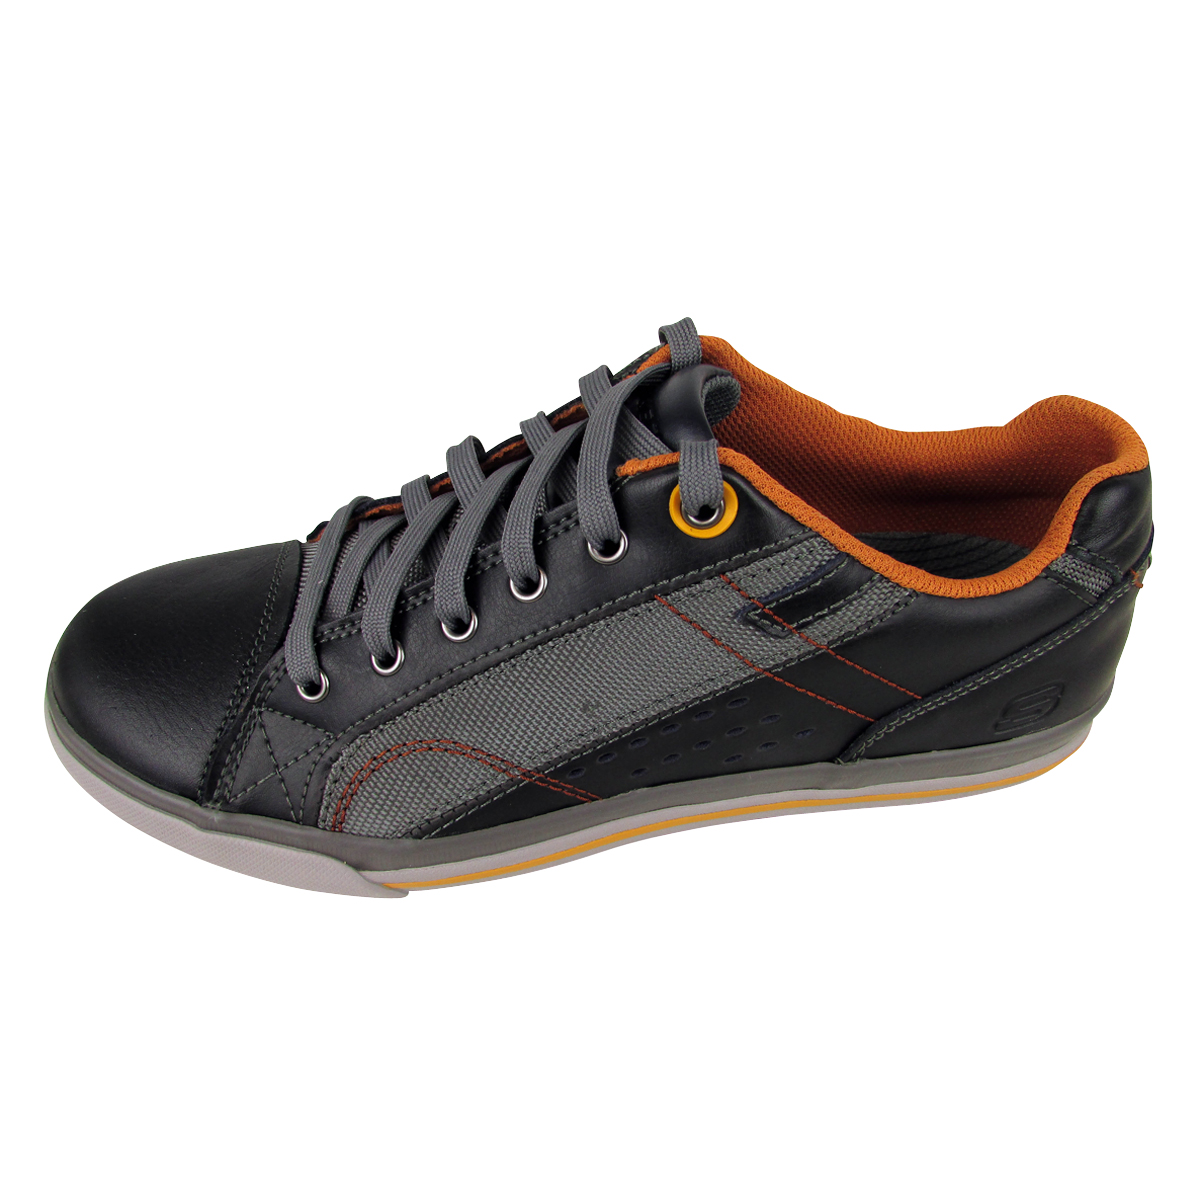 herren skechers leder turnschuhe memory foam trainer schn rschuhe neu ebay. Black Bedroom Furniture Sets. Home Design Ideas